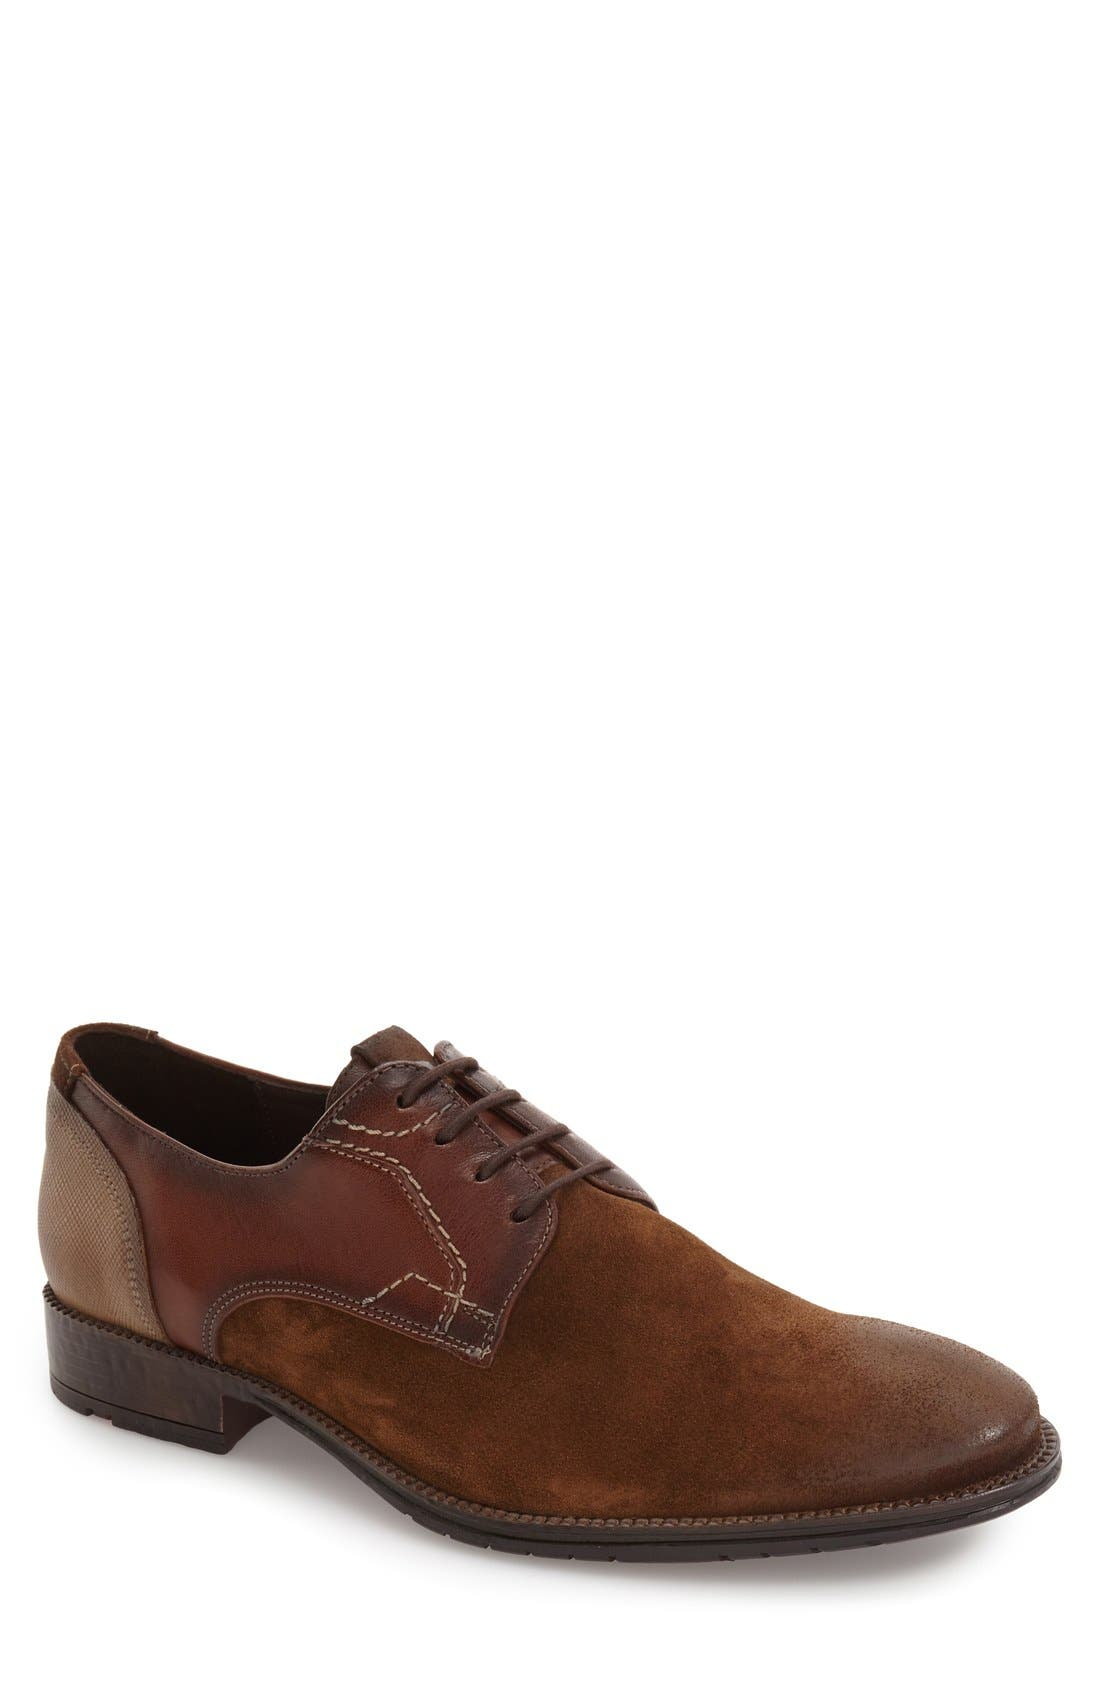 Derek Plain Toe Derby,                         Main,                         color, 219